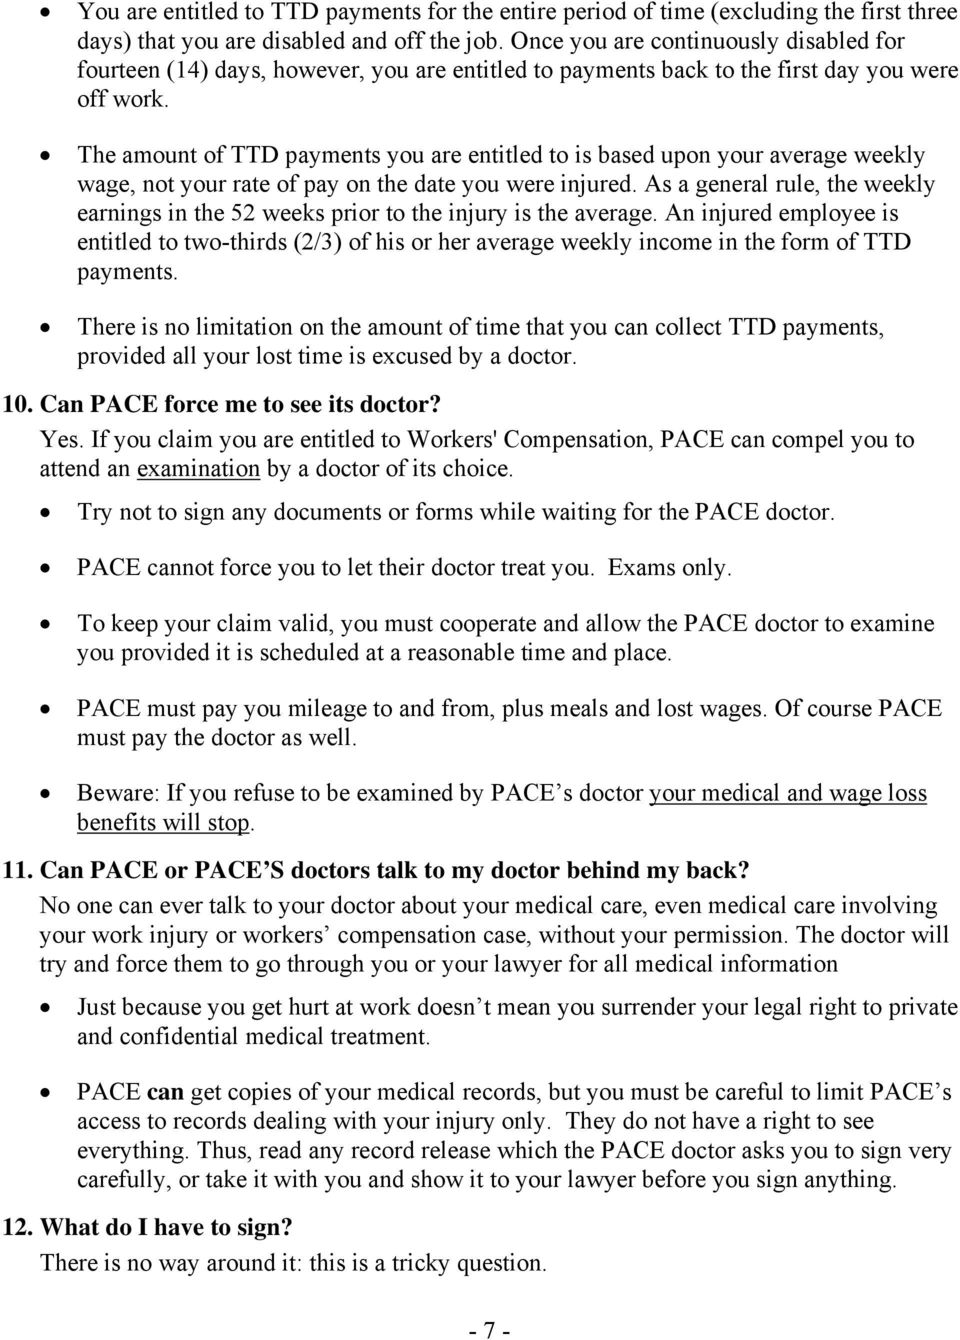 The amount of TTD payments you are entitled to is based upon your average weekly wage, not your rate of pay on the date you were injured.